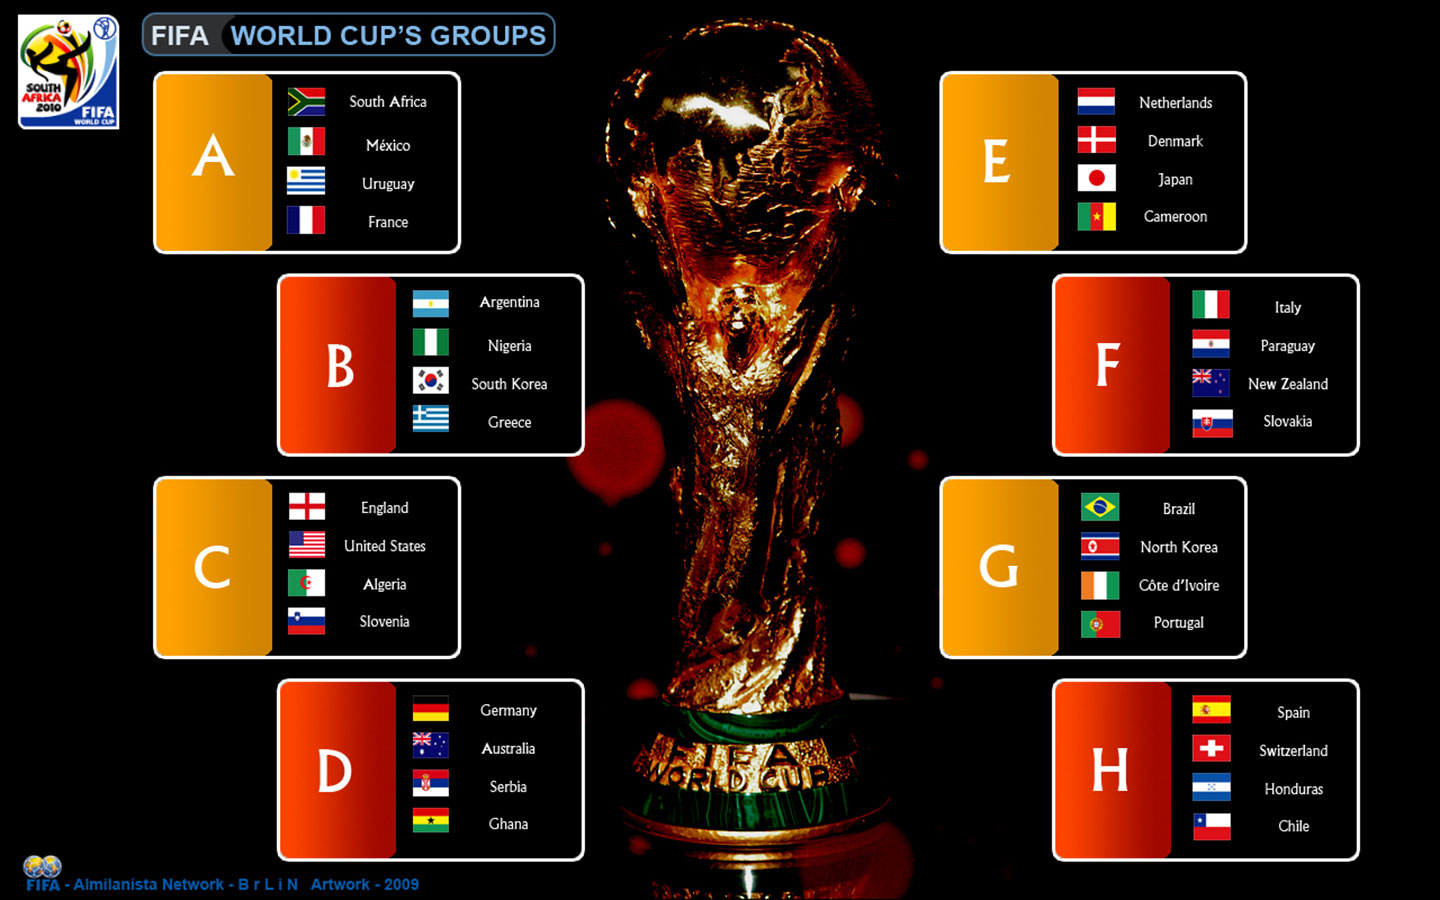 THE WORLD CUP IS HERE! Posted by Anish Kuruvilla at 3:58 PM 0 comments